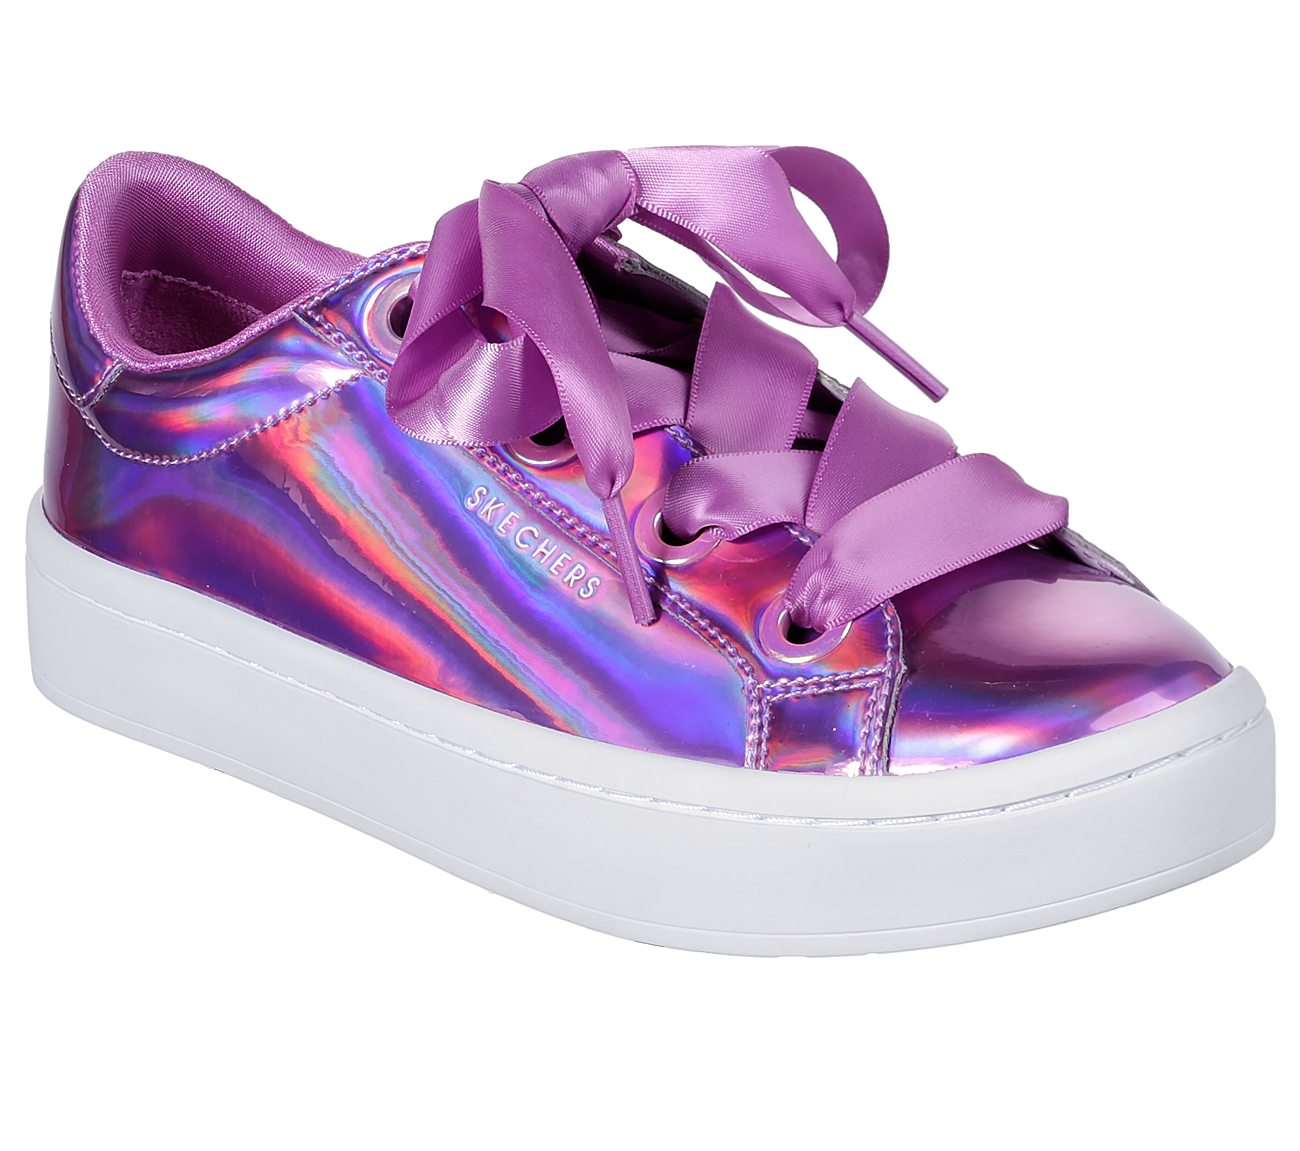 Skechers Street Hi-Lite Liquid ... Bling Women's Sneakers